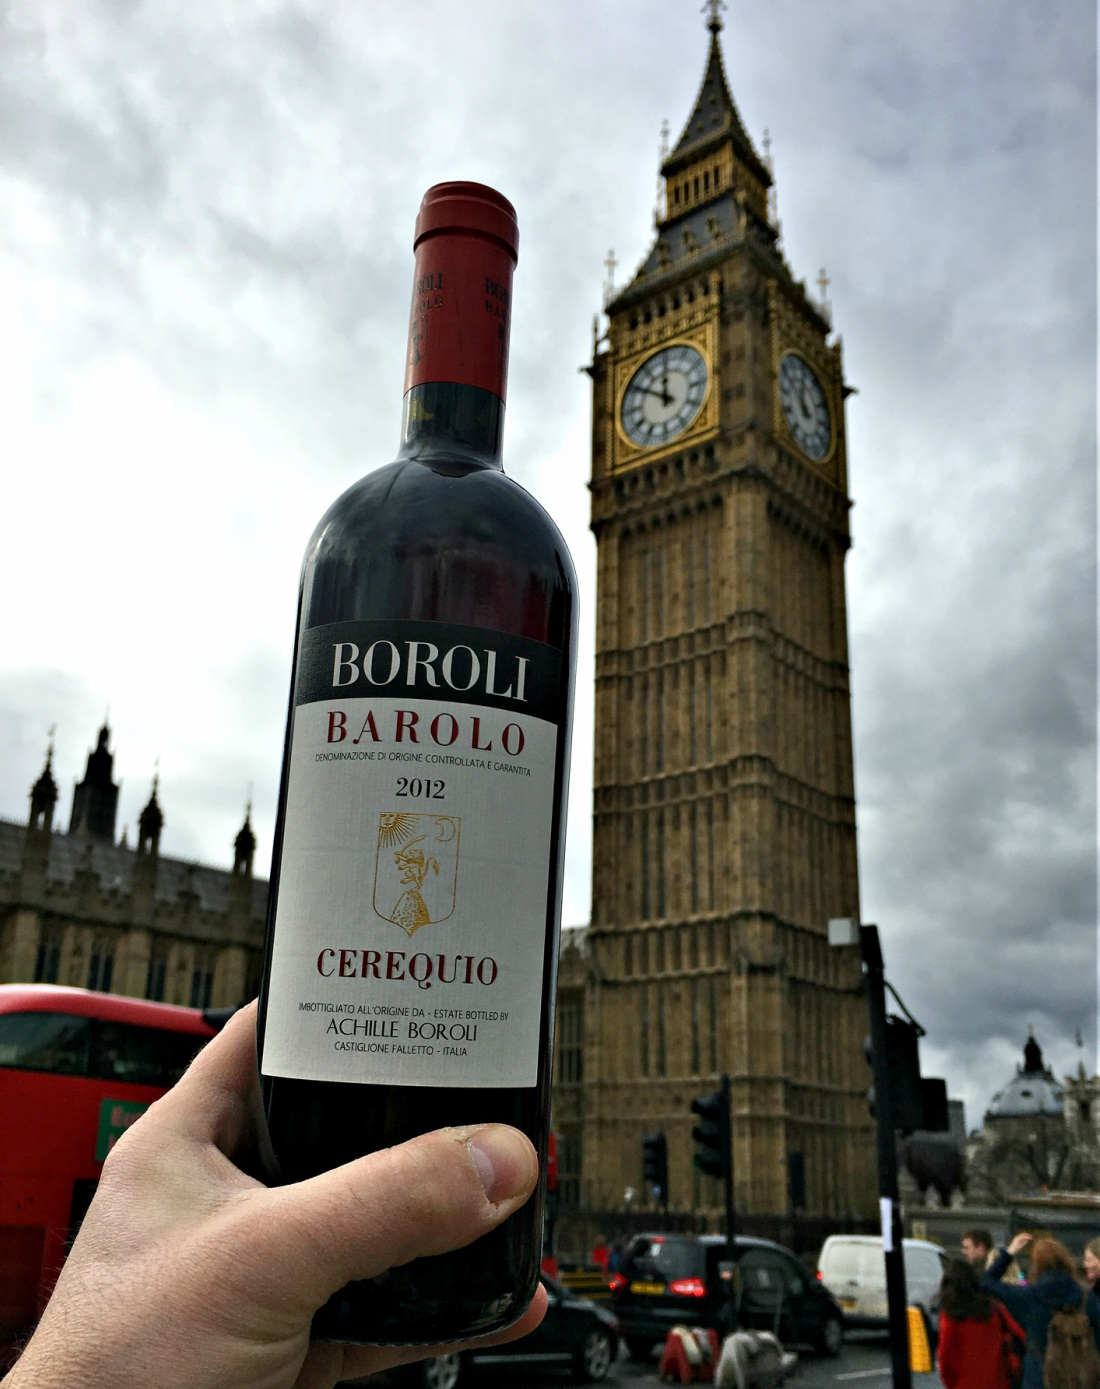 Boroli in London